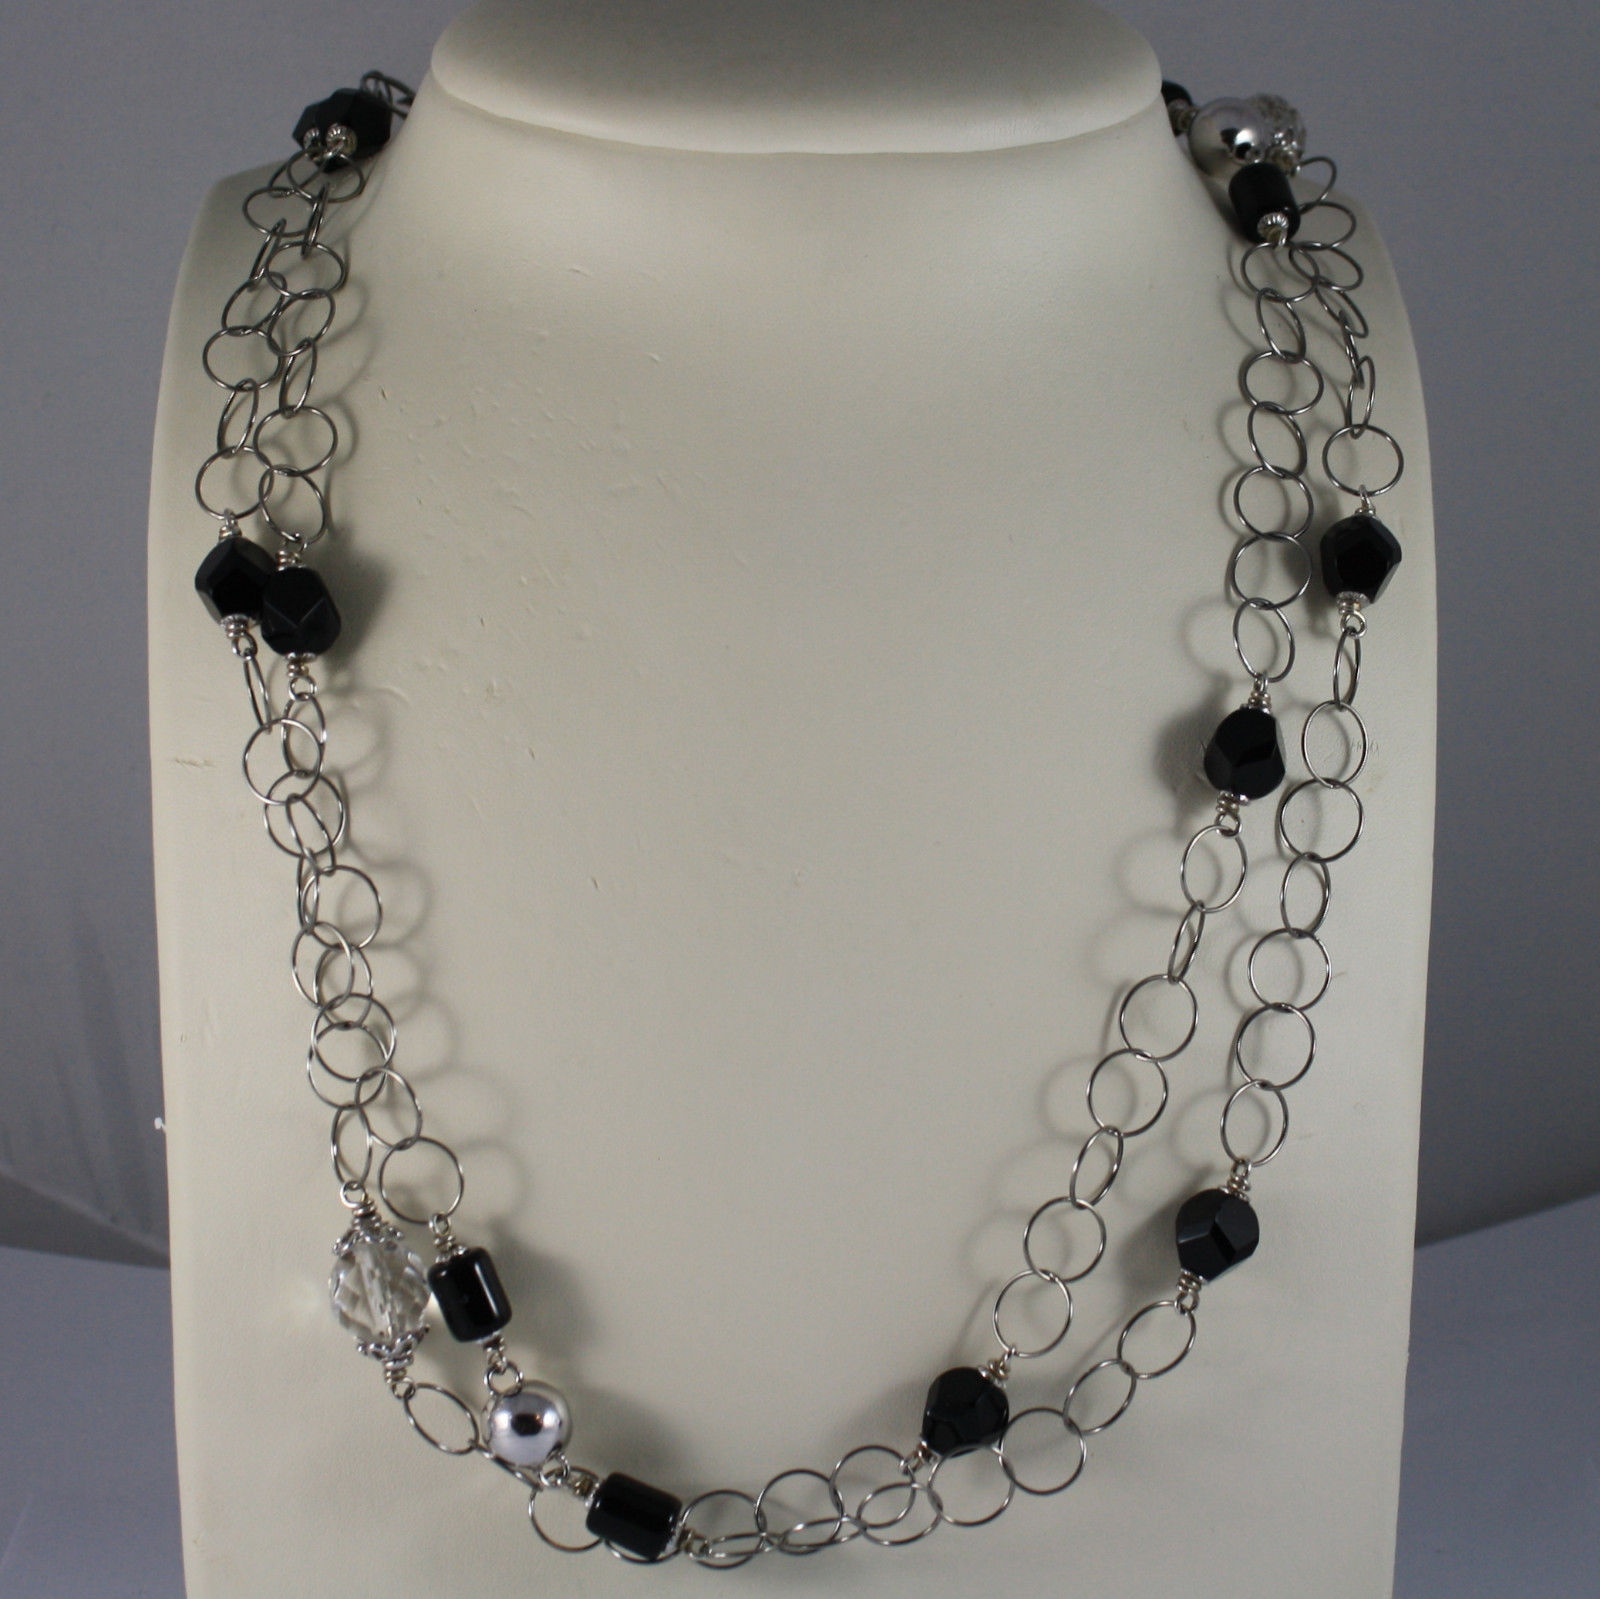 .925 RHODIUM SILVER LONG NECKLACE WITH BLACK ONYX AND TRANSPARENT CRYSTALS